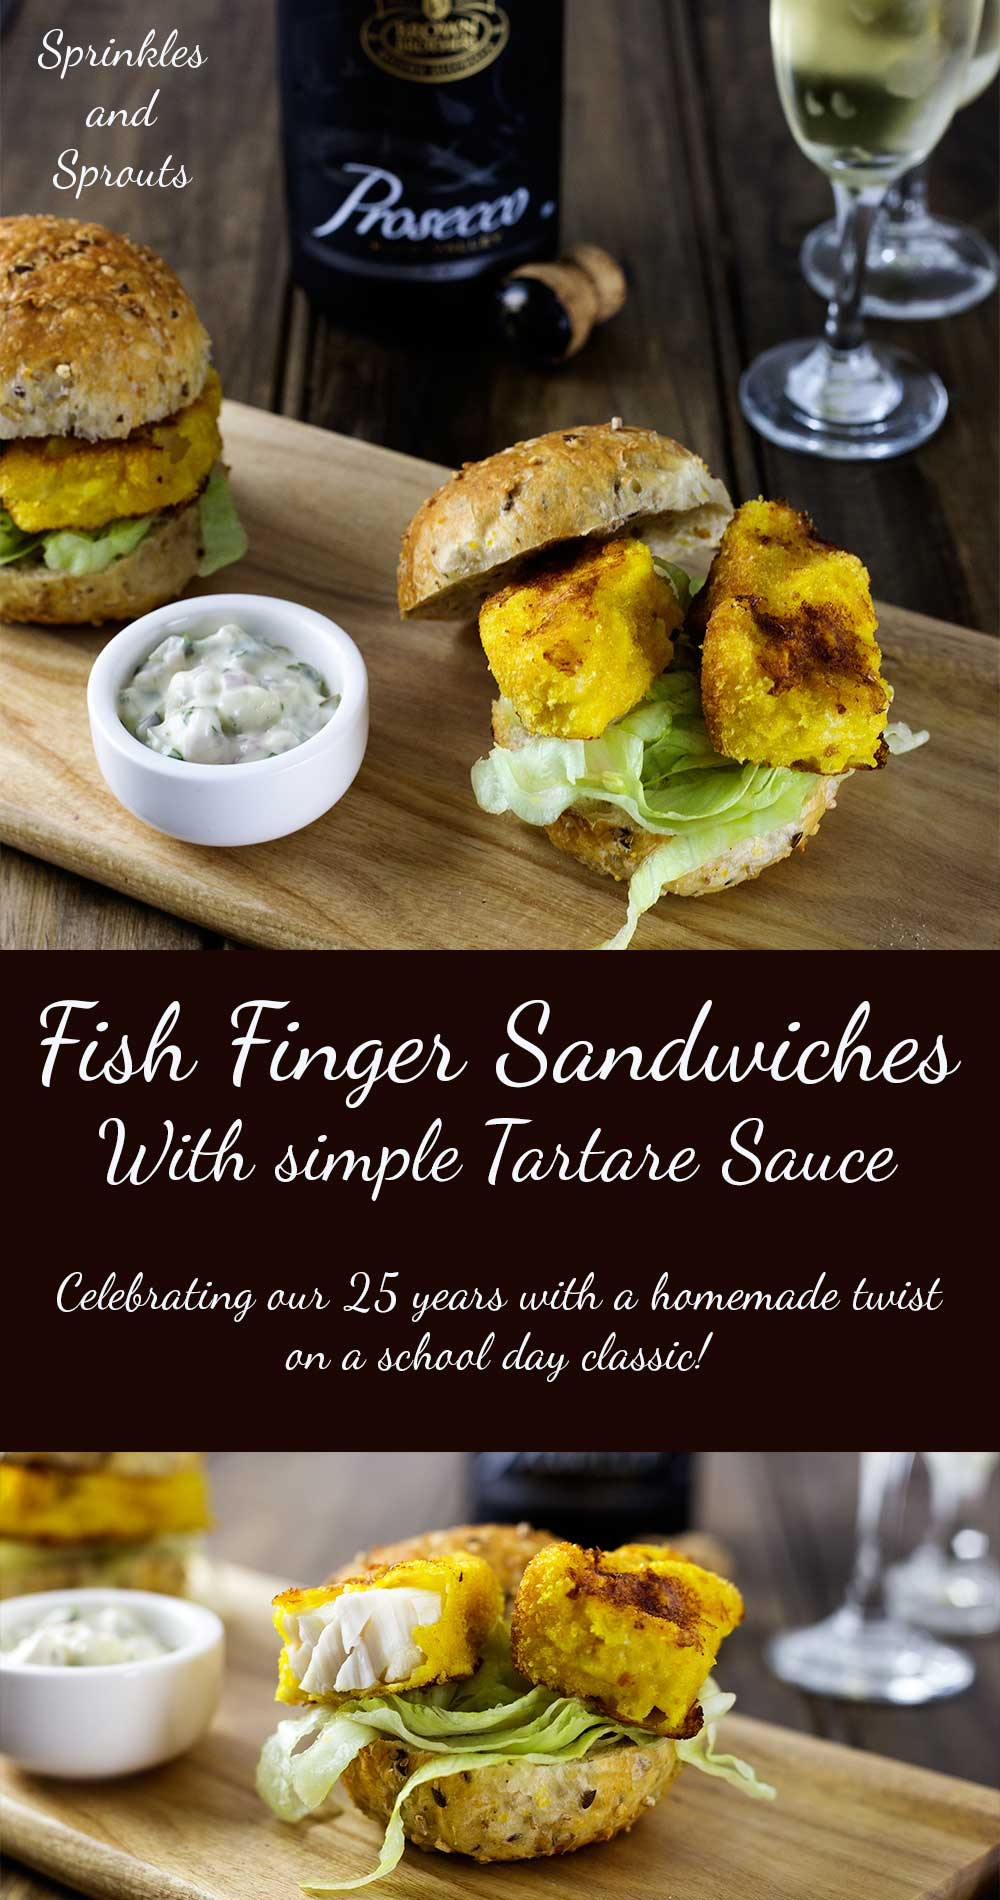 Homemade Fish Fingers. Succulent fish encased in a glorious crunchy crumb served with simple homemade tartare sauce. The perfect sandwich filling!